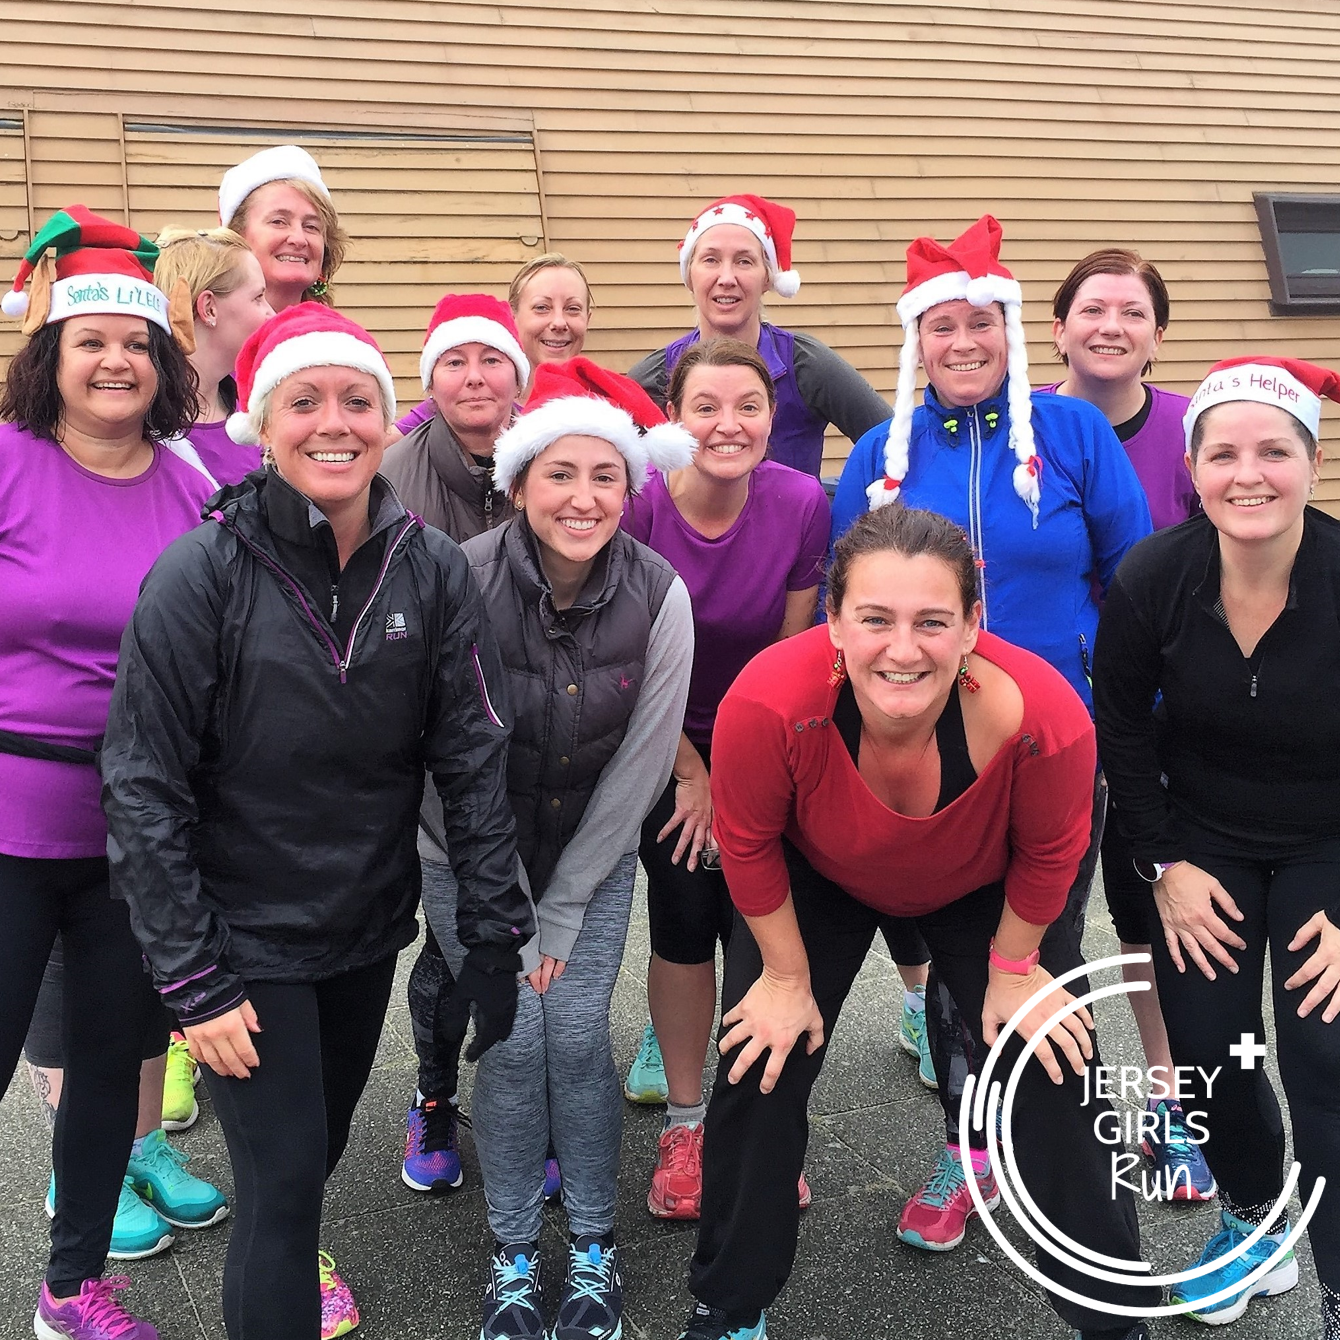 11 DECEMBER 2016 - Christmas Fun Run and Lunch - JERSEY GIRLS organised a Christmas Fun Run followed by a lunch at Coco Rico. Two routes were set, one for 5k and another for 10k so that all JERSEY GIRLS could be included. Great start to the festive season.